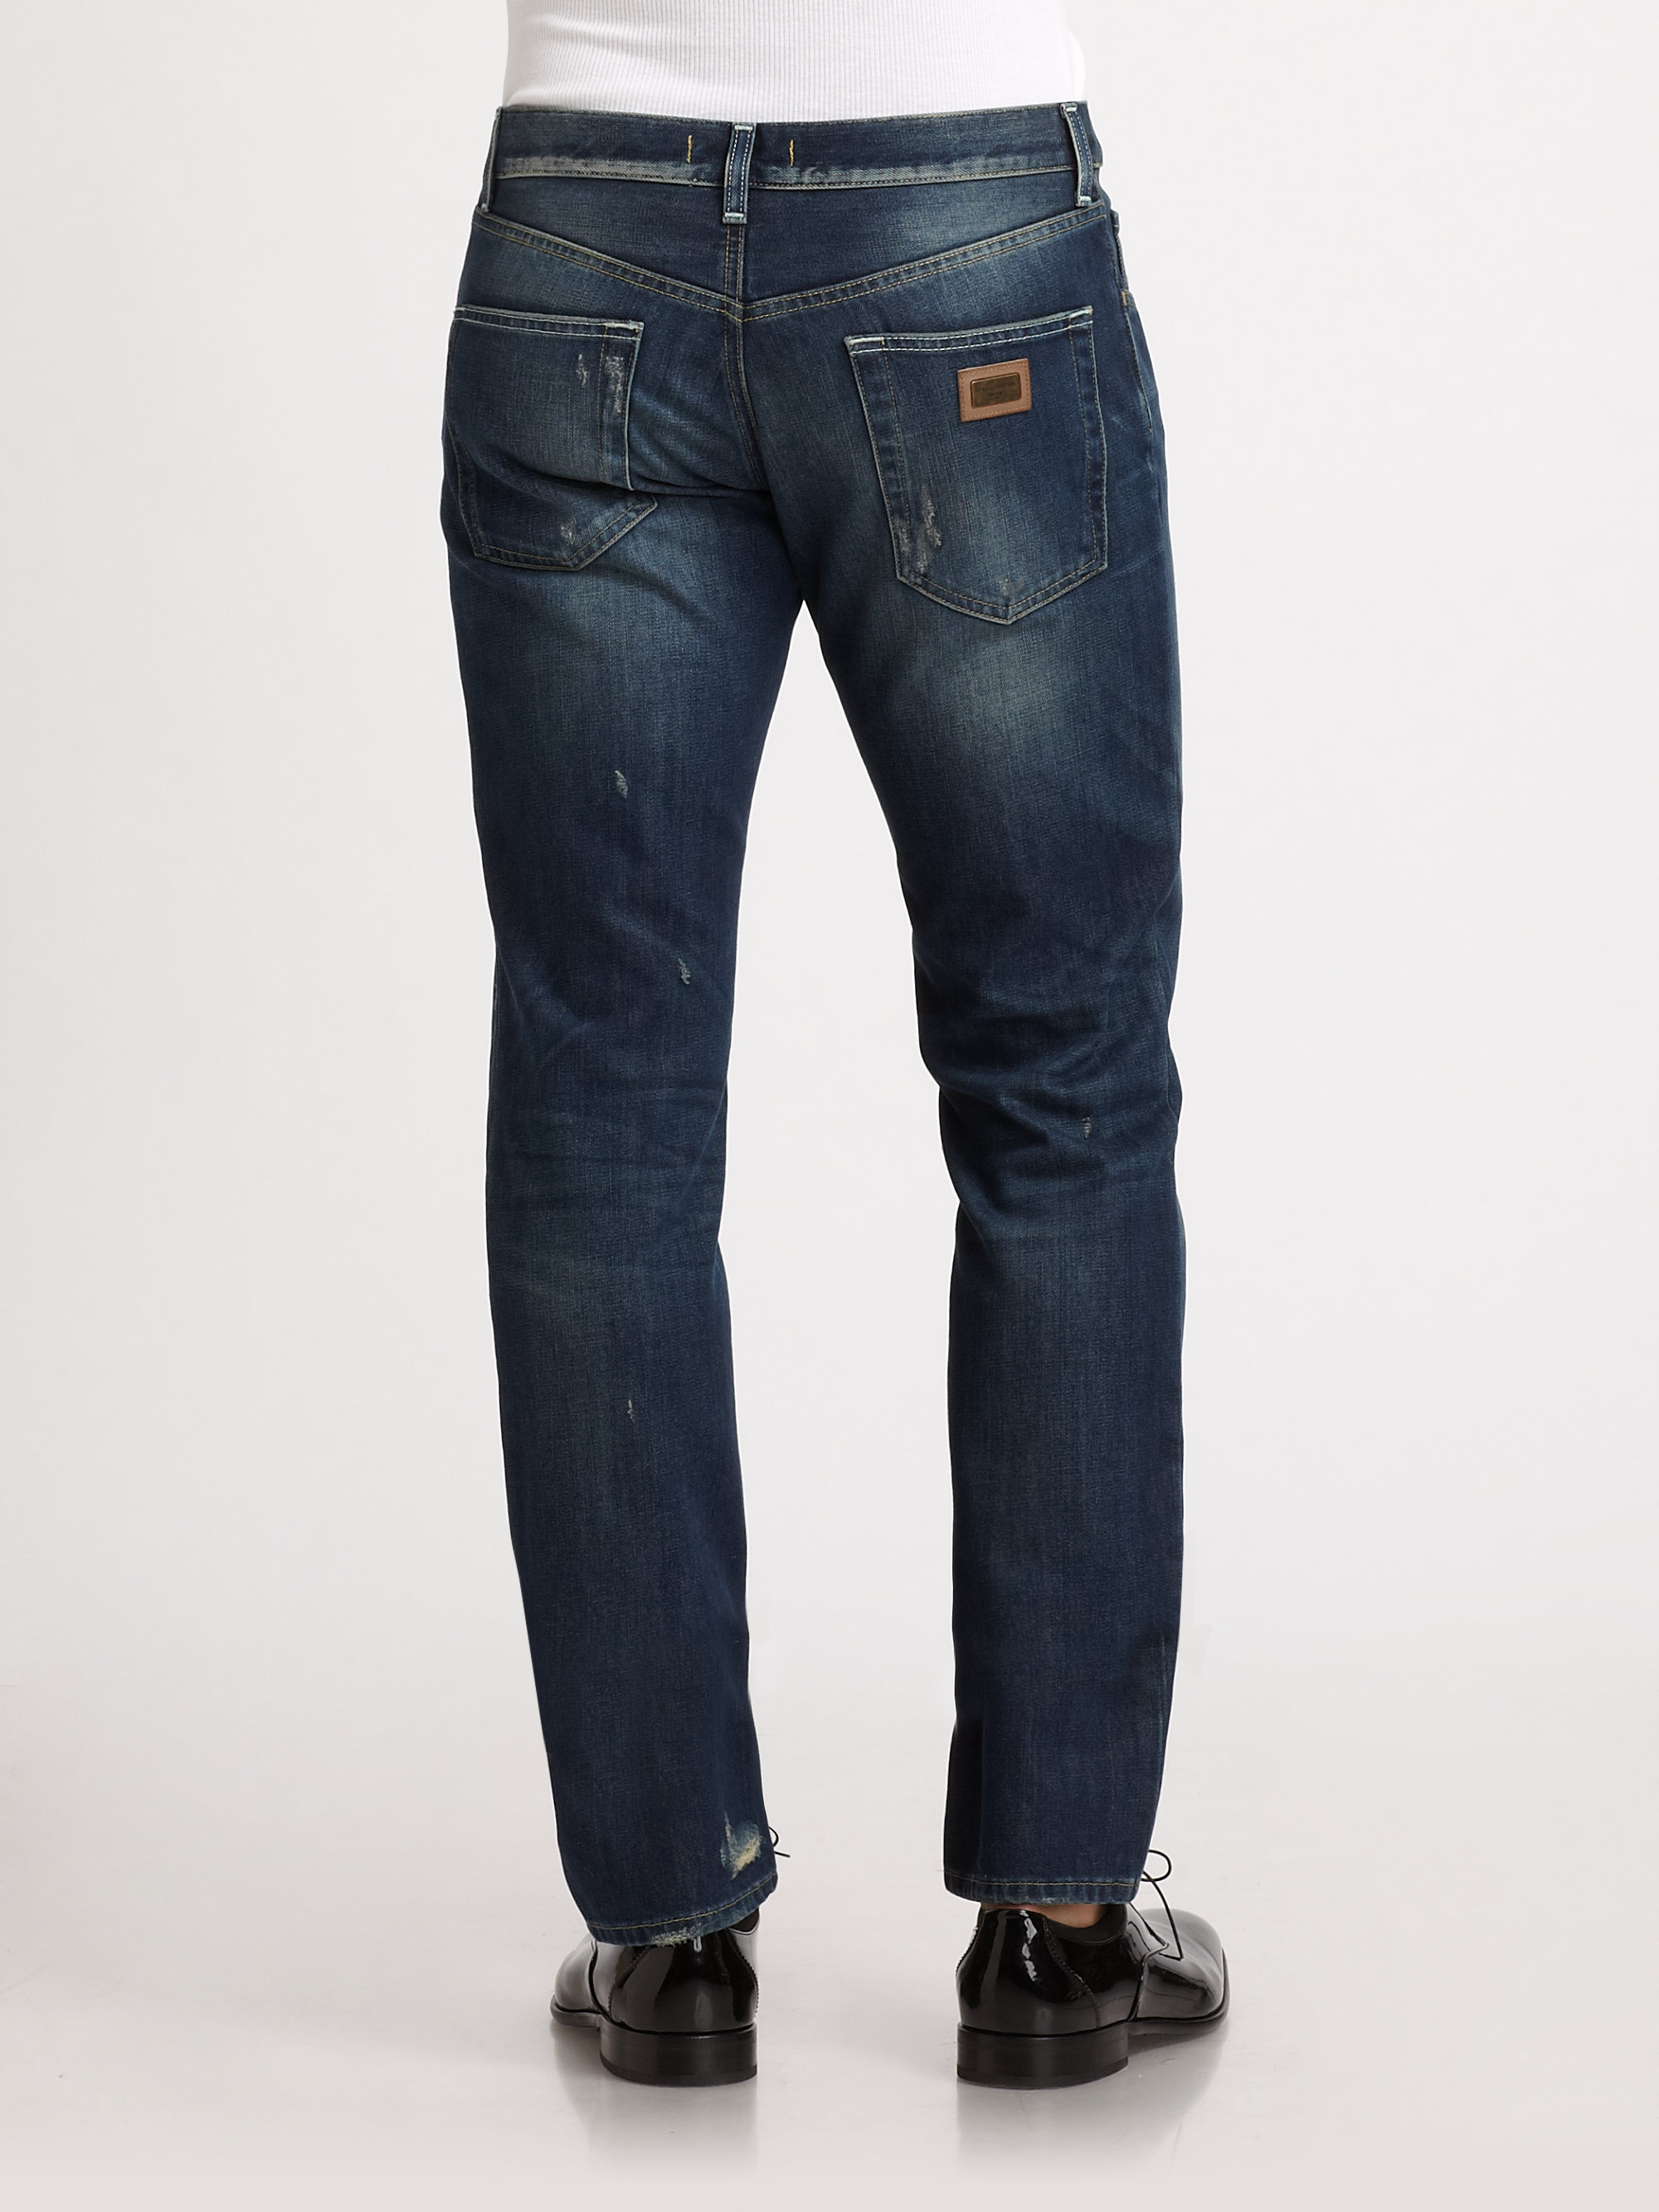 Lyst - Dolce & Gabbana Distressed Jeans in Blue for Men